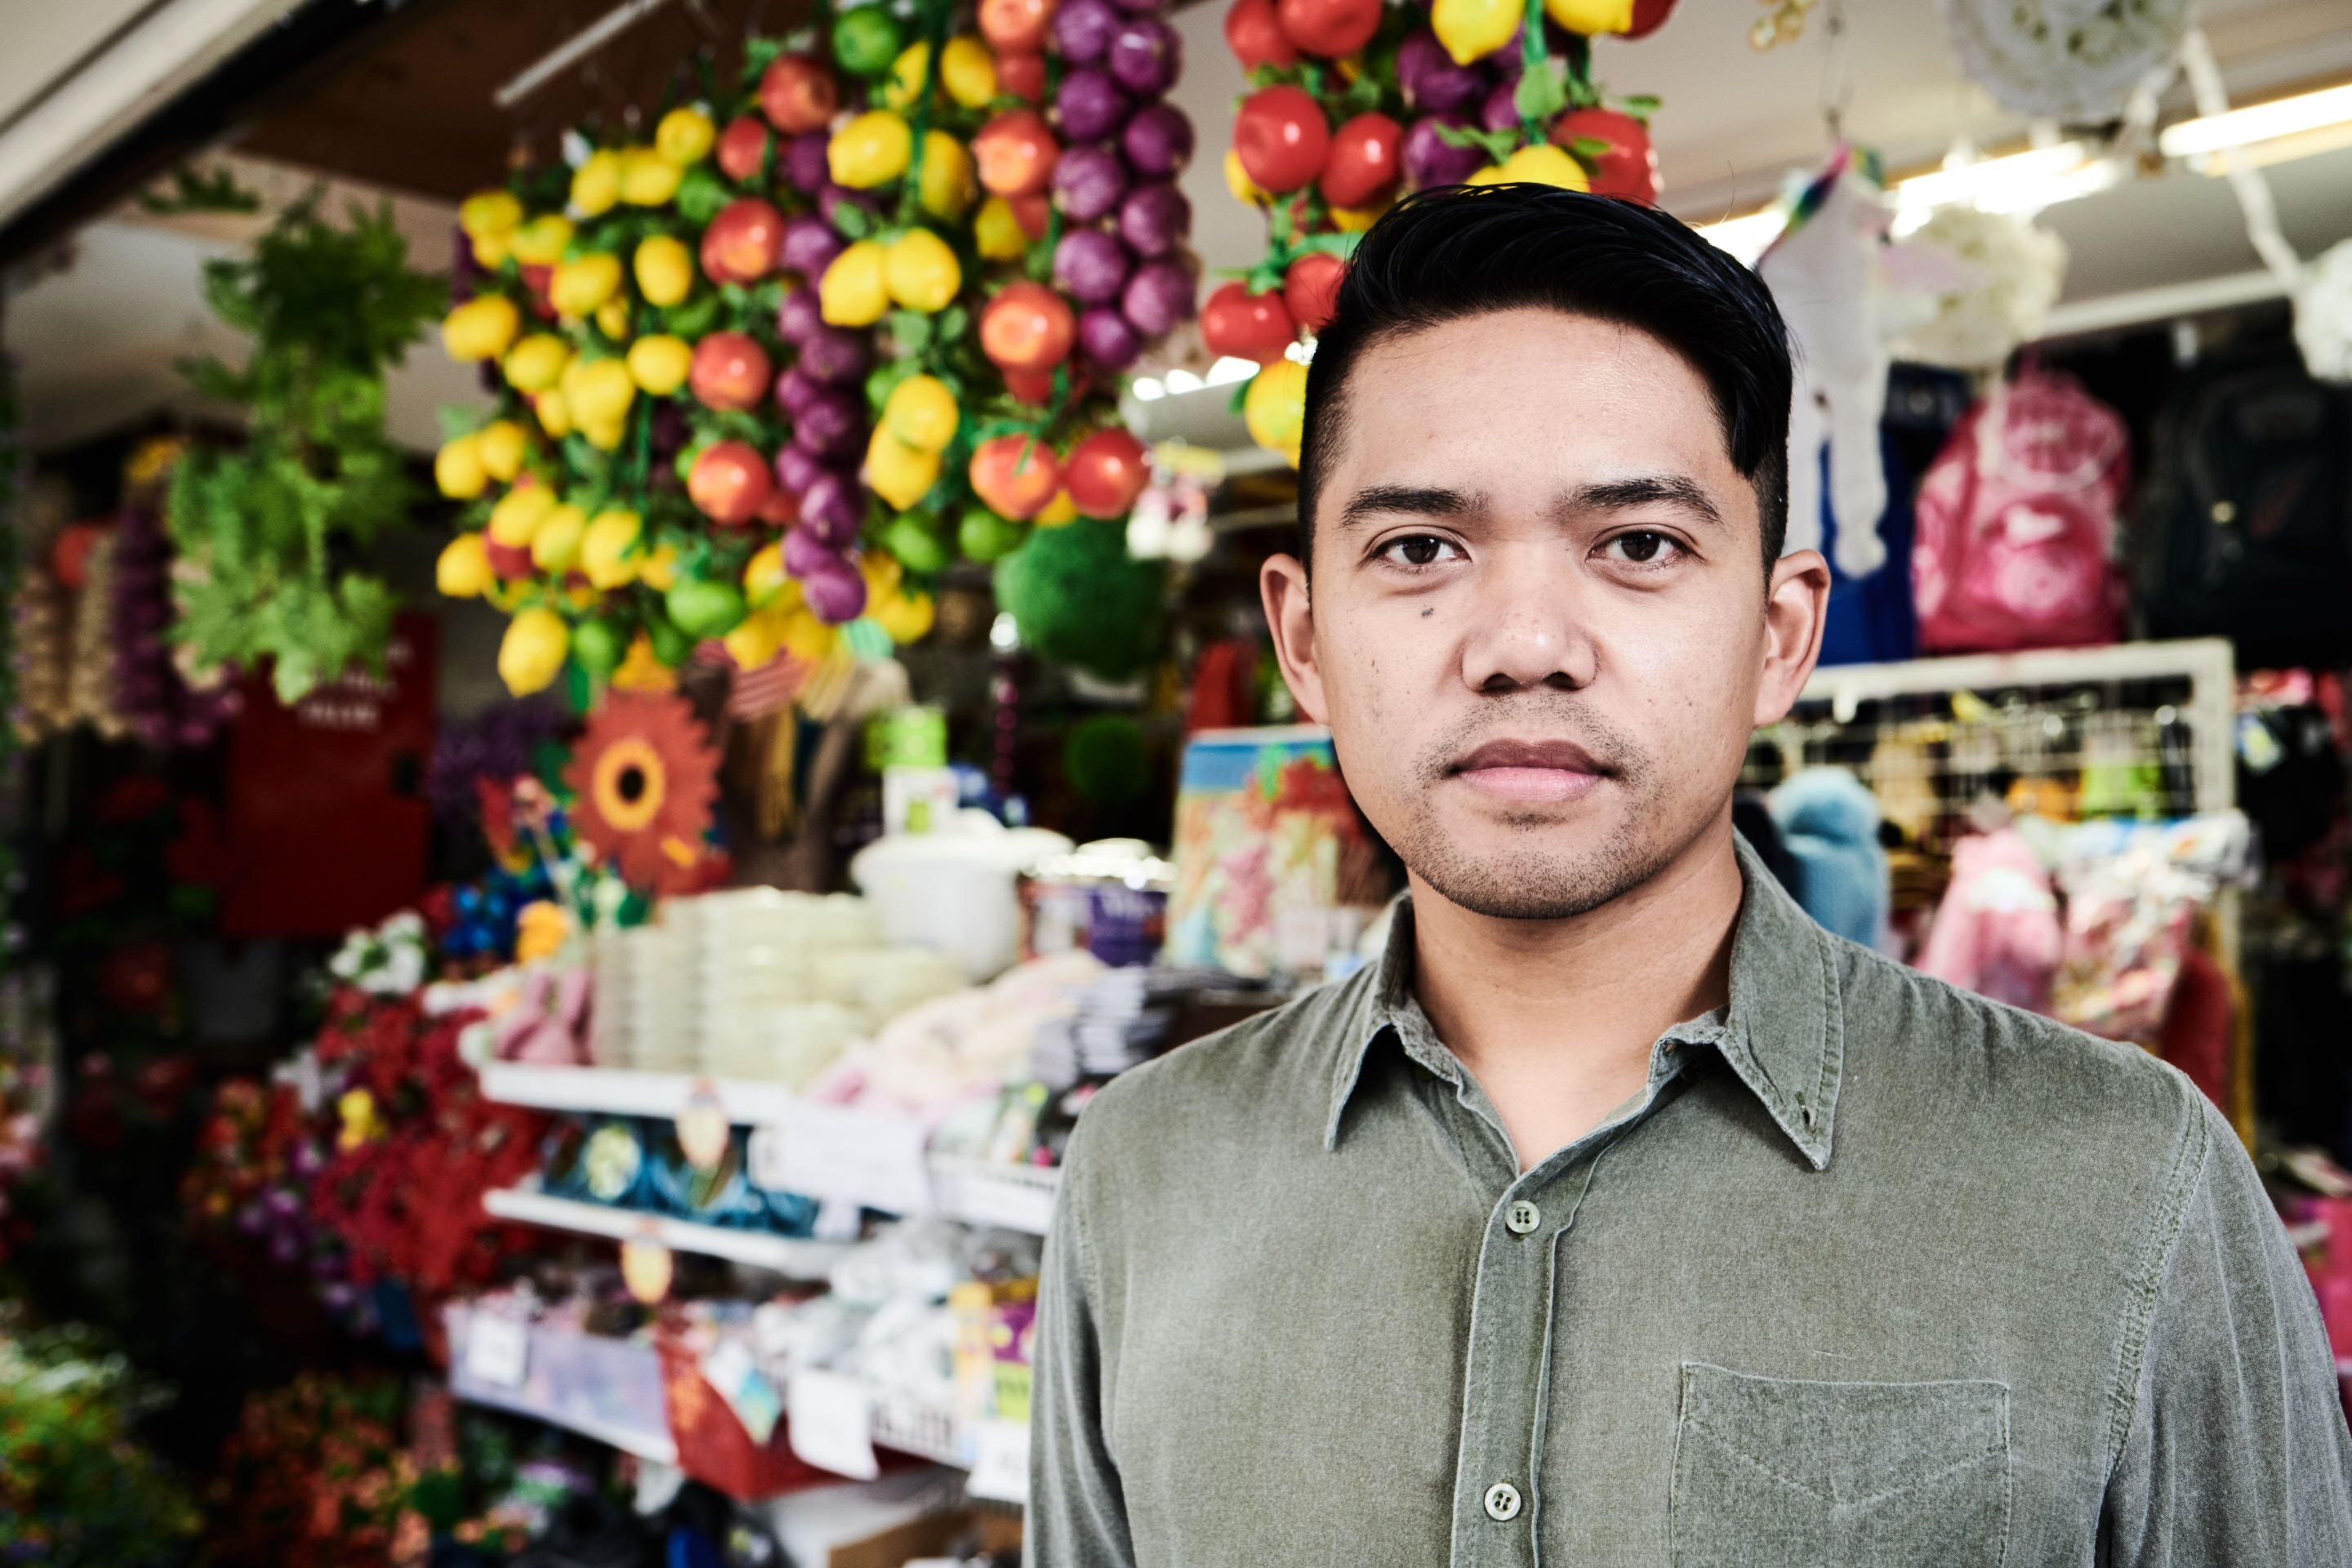 Man standing in front of a shop that has yellow, red and purple hanging plastic fruit